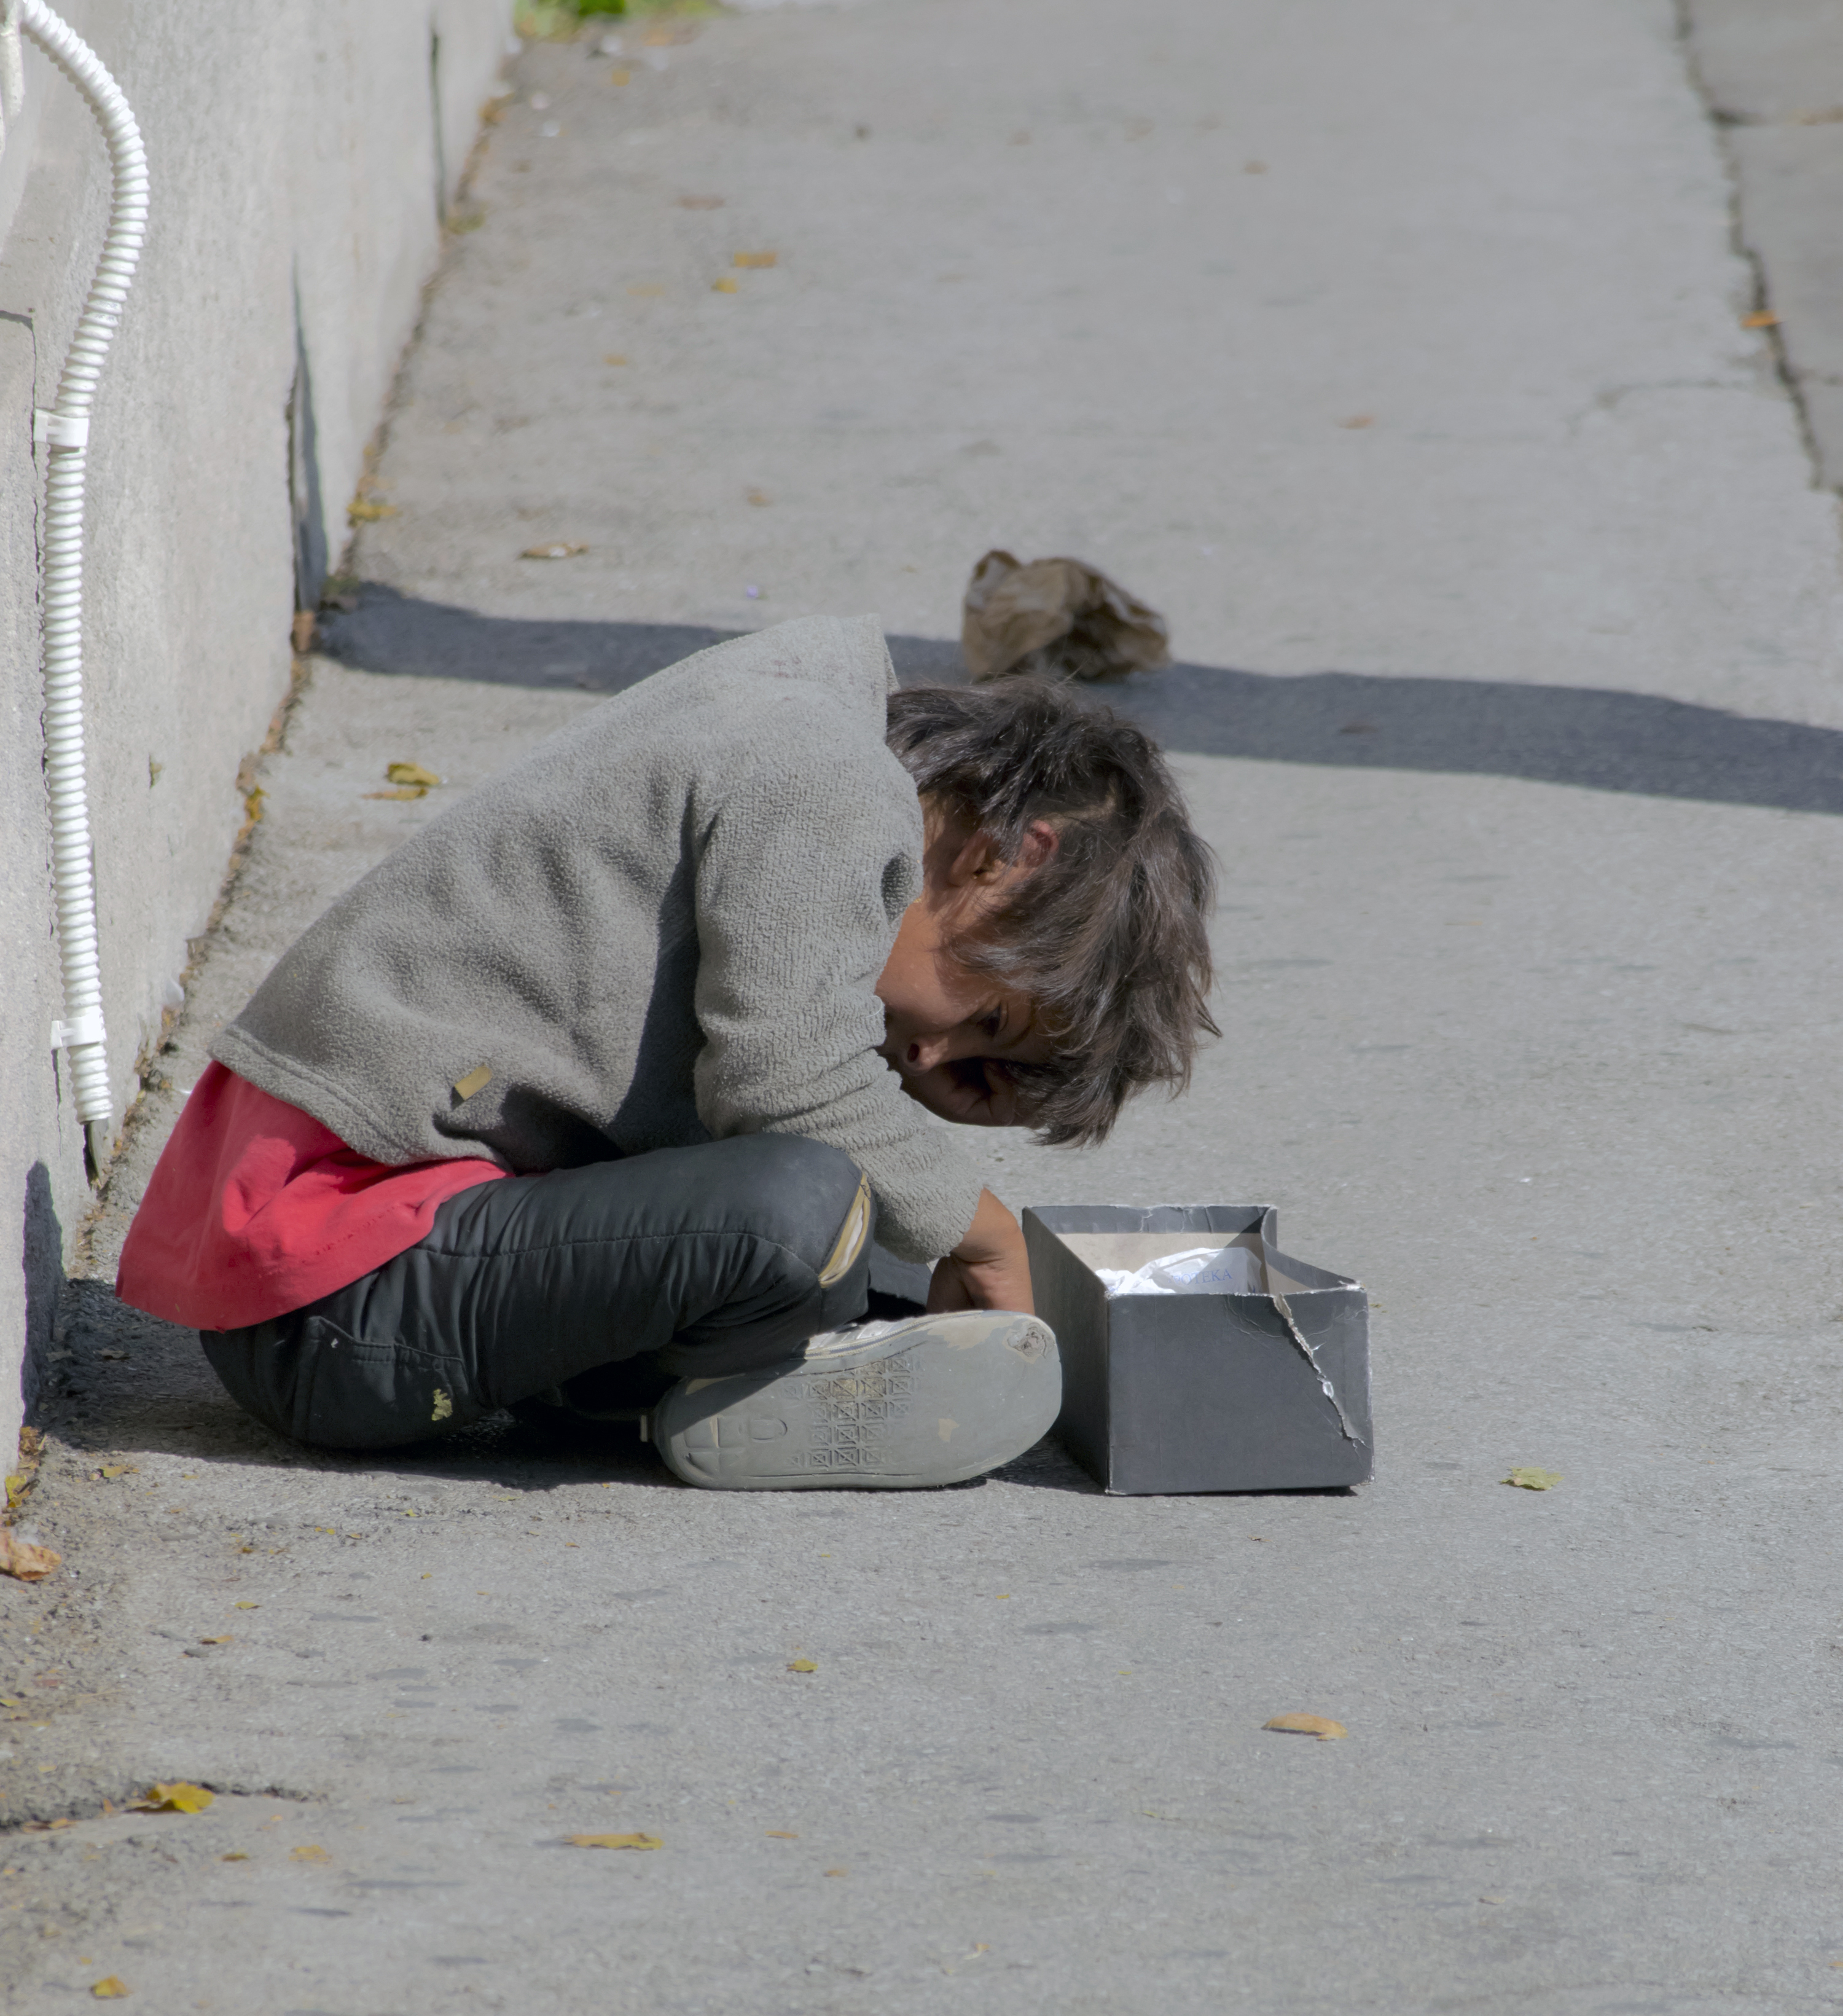 Child sitting in the street, begging_COLOURBOX5371111.jpg